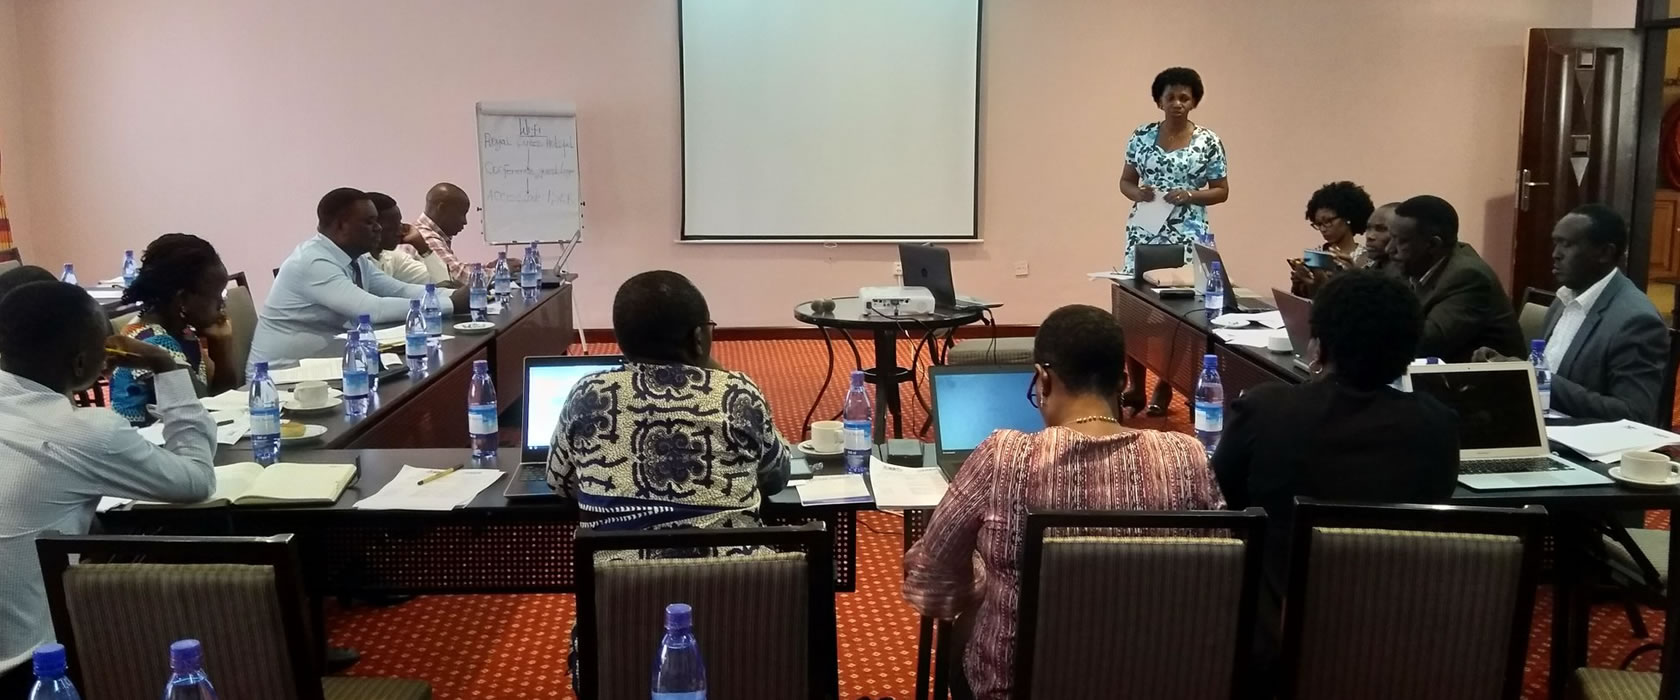 Workshop was to discuss approaches that should be adopted by the National Health Insurance (NHI)